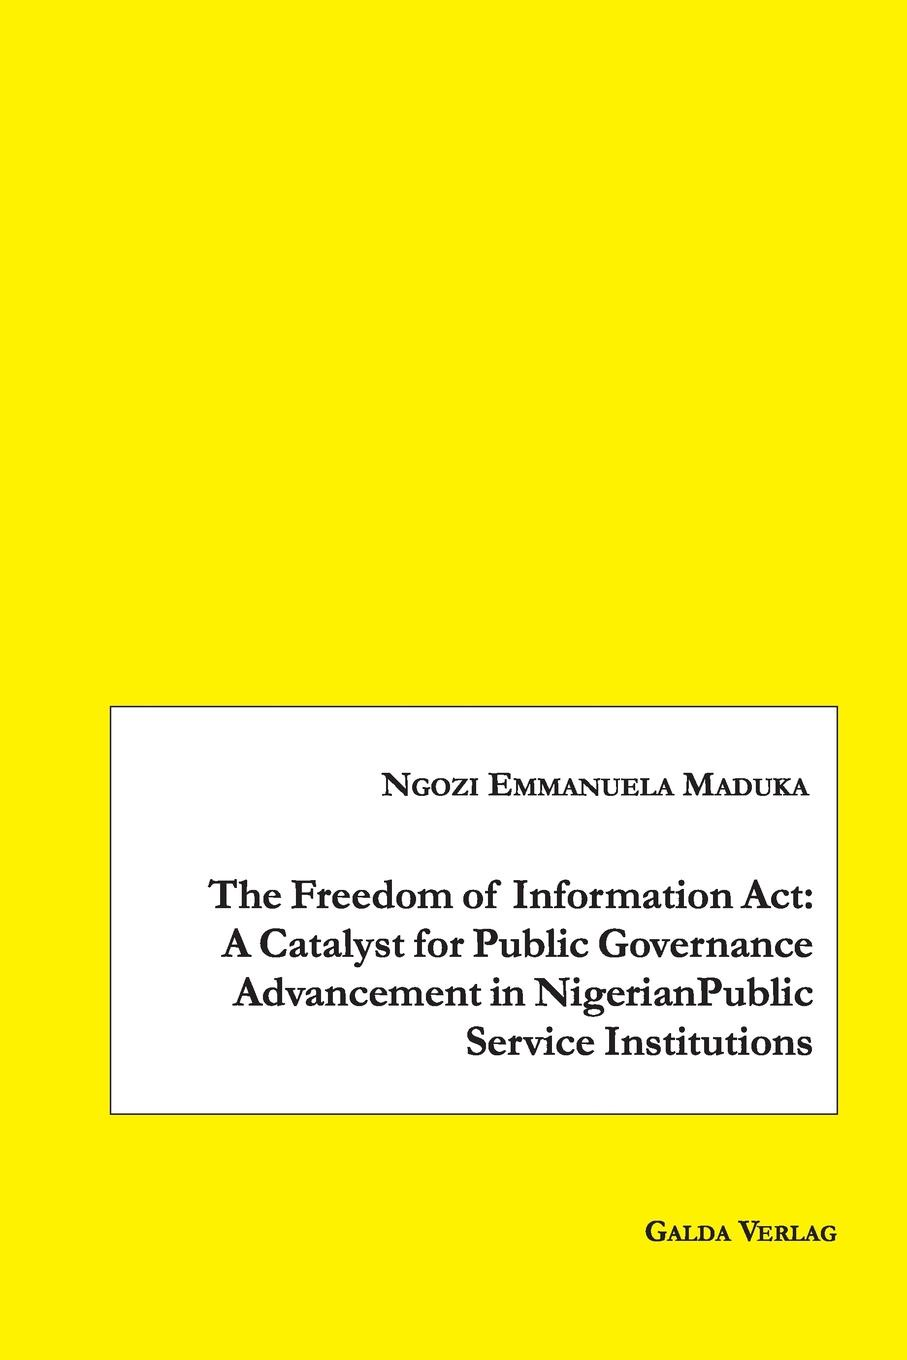 Ngozi Emmanuela Maduka The Freedom of Information Act. A Catalyst for Public Governance Advancement in Nigerian Public Service Institutions blessing adegoke effect of training on employees productivity in public service organisation